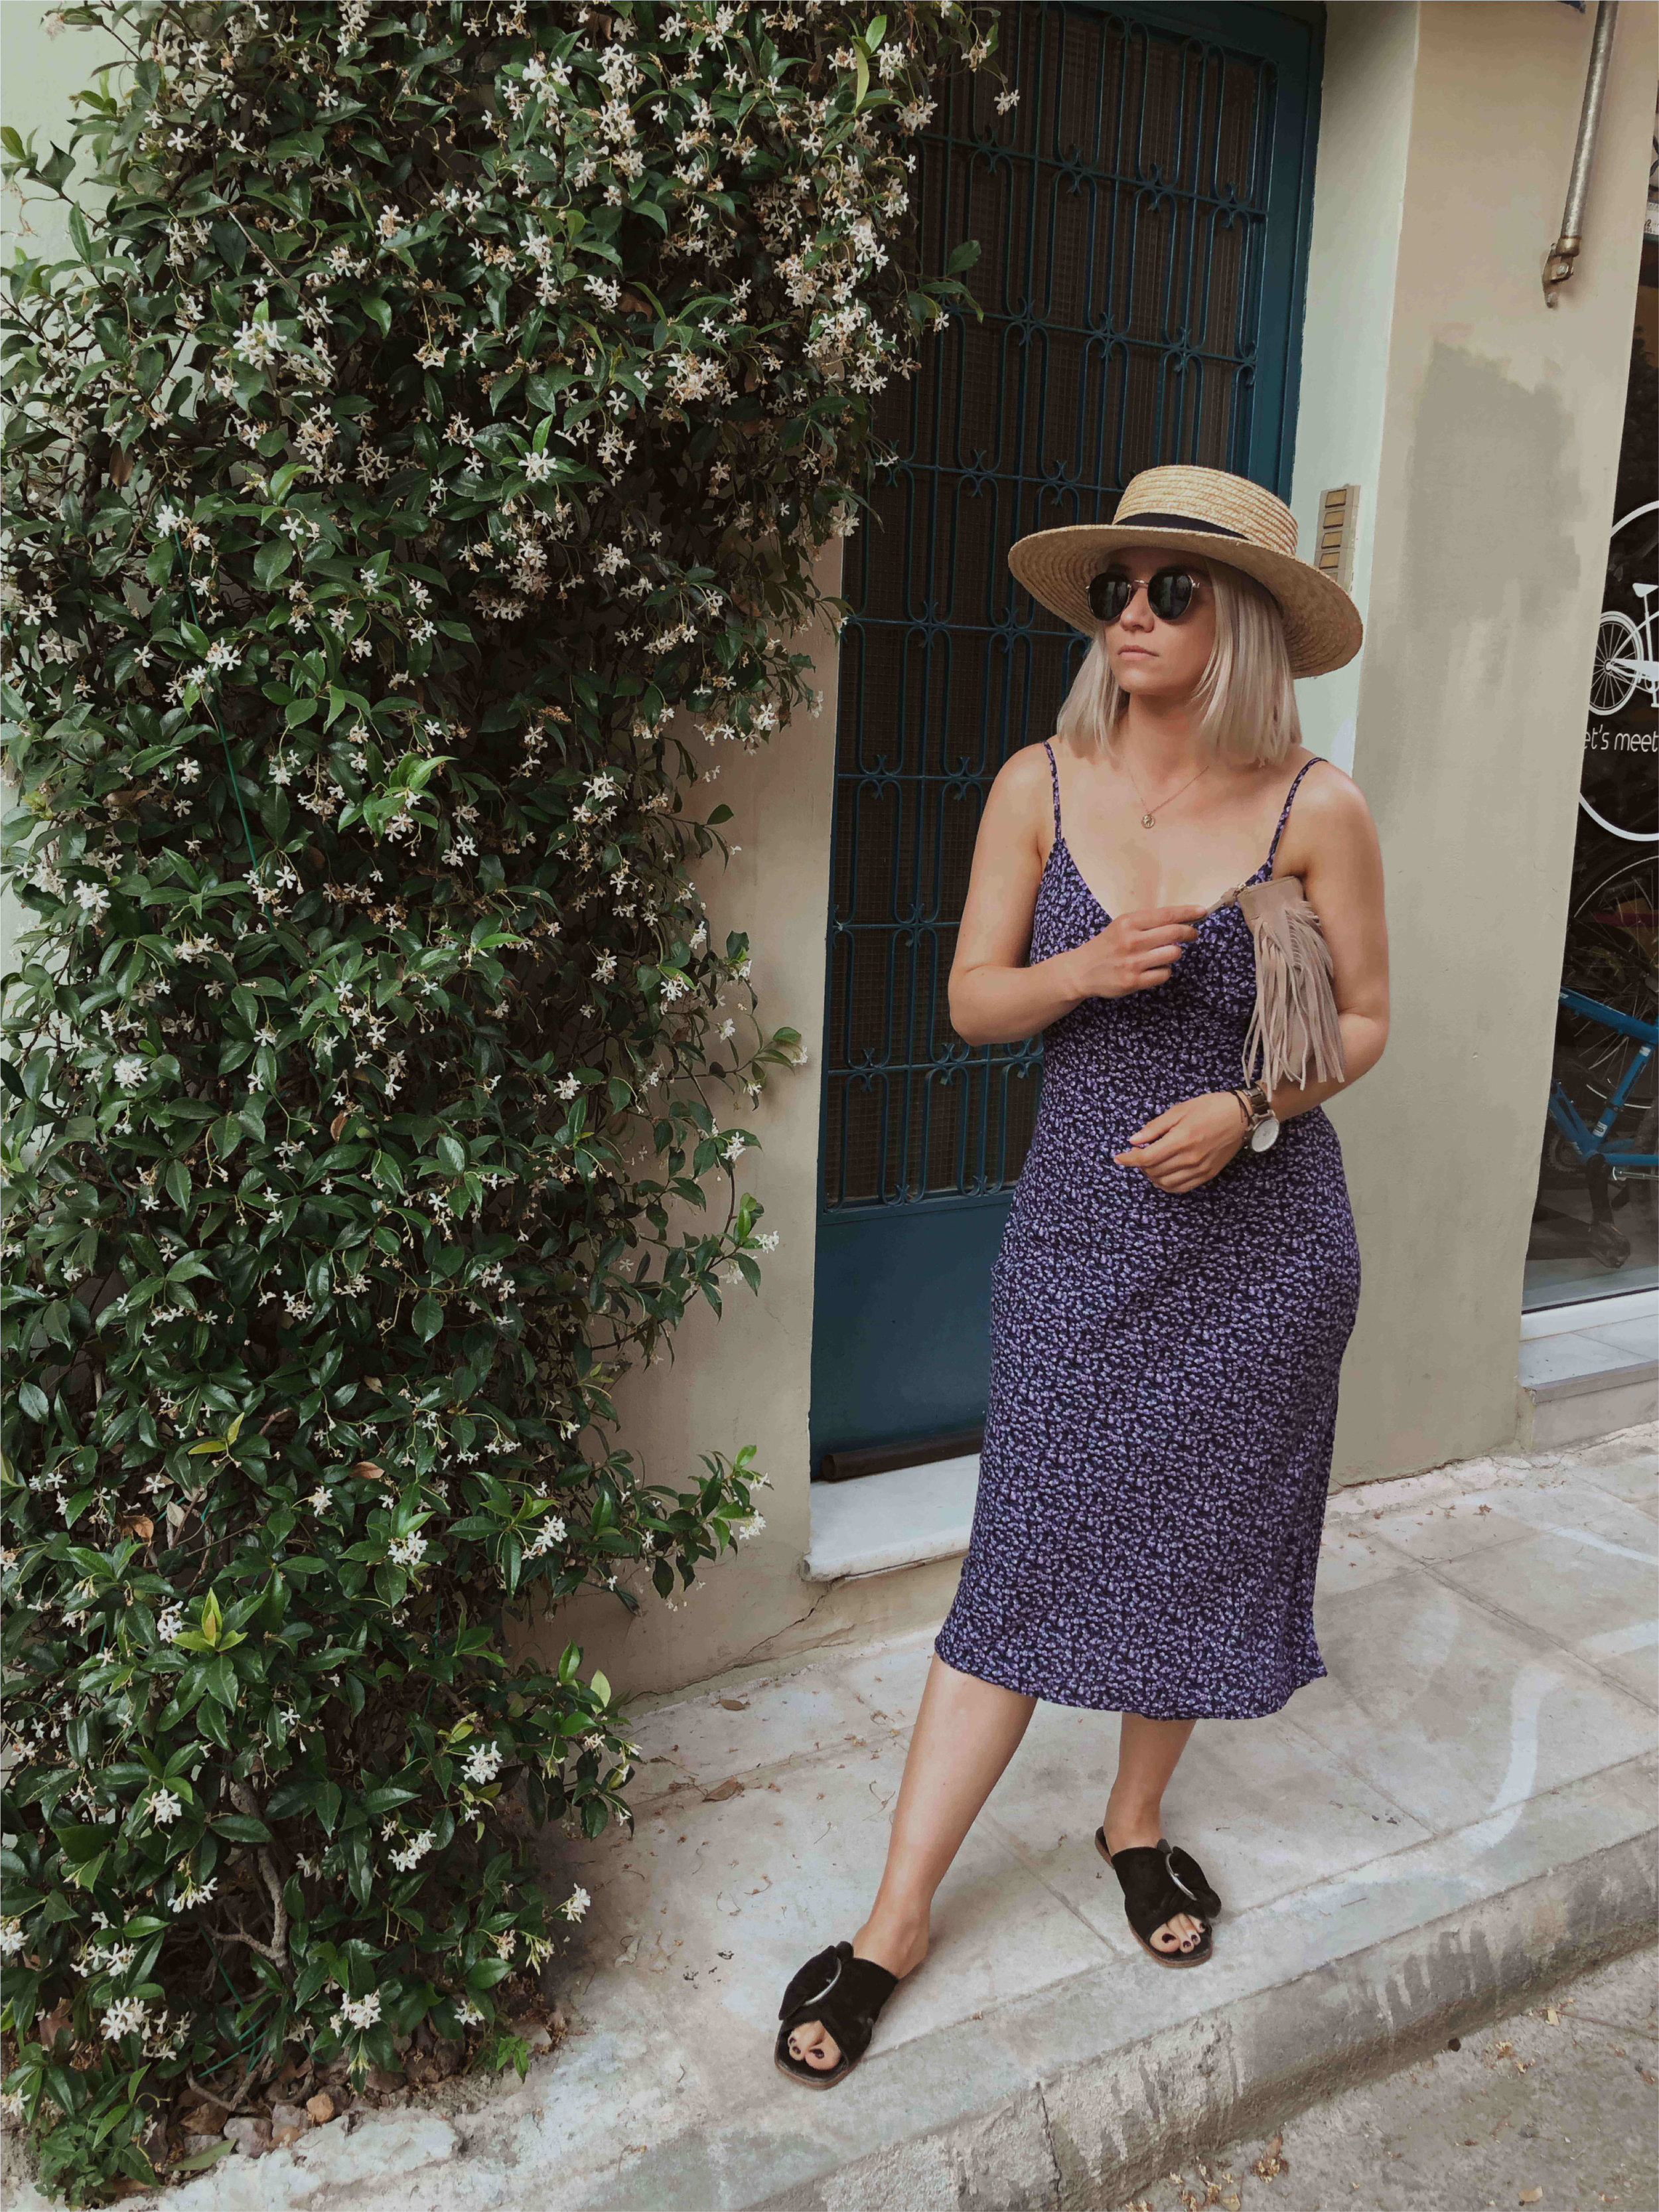 Day trip to Athens, in a vintage slip dress with a straw hat, northern magpie, joey taylor 5